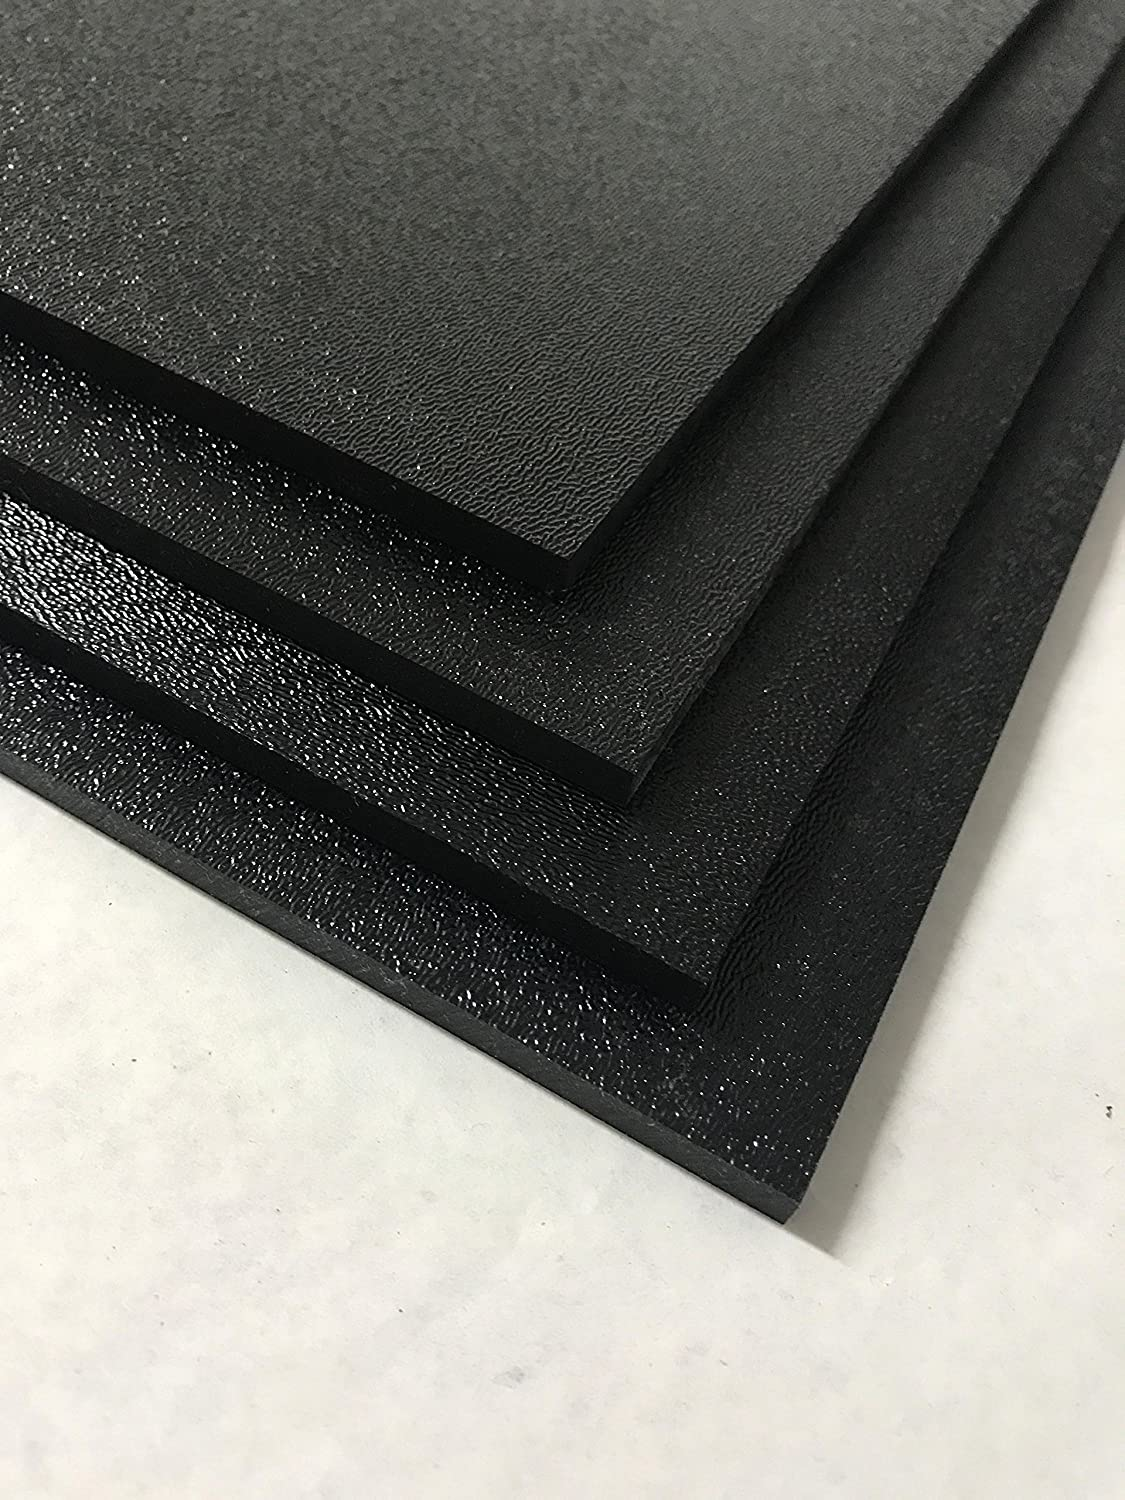 """ABS Black Plastic Sheet 1/8"""" x 24"""" x 48"""" Textured 1 Side Vacuum Forming (Pack of 4)"""